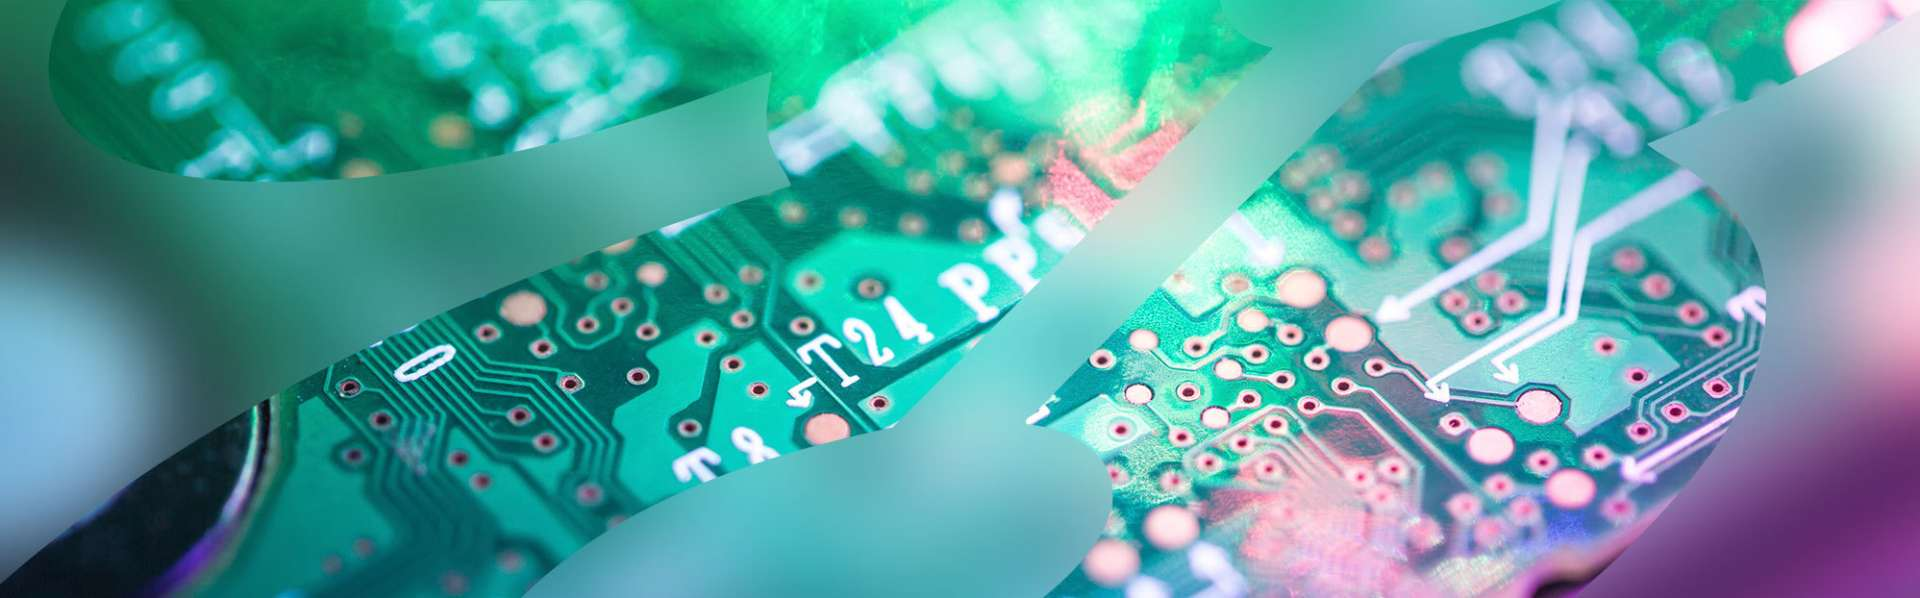 Electrical / Electronics Industry - Chemical Additives for Plastics